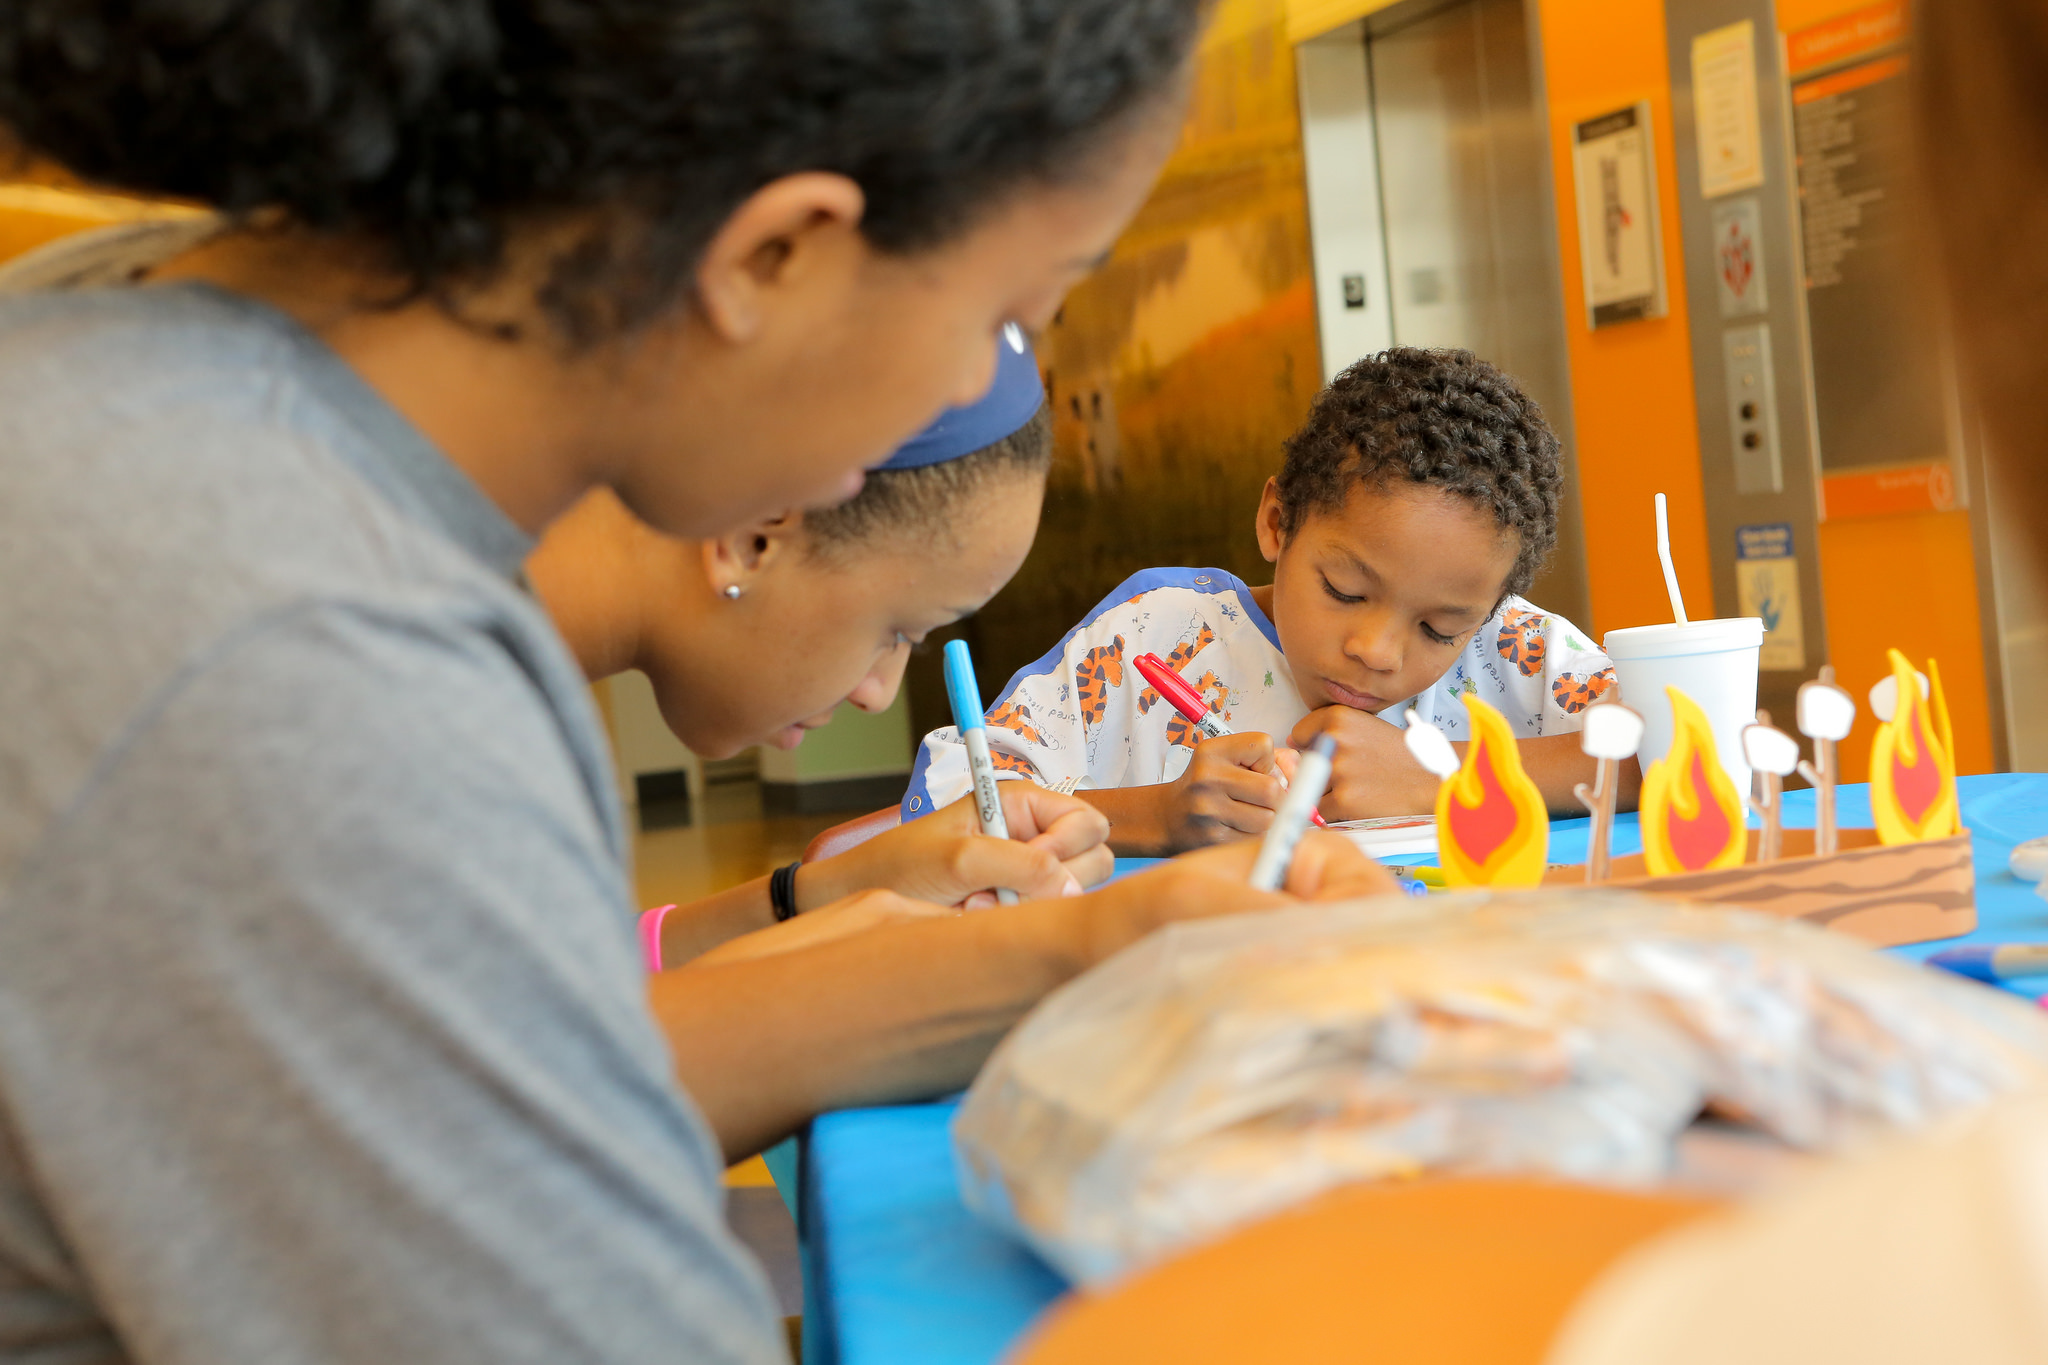 A member of the Penn State women's basketball team sits a table coloring with with two children who are wearing hospital gowns.